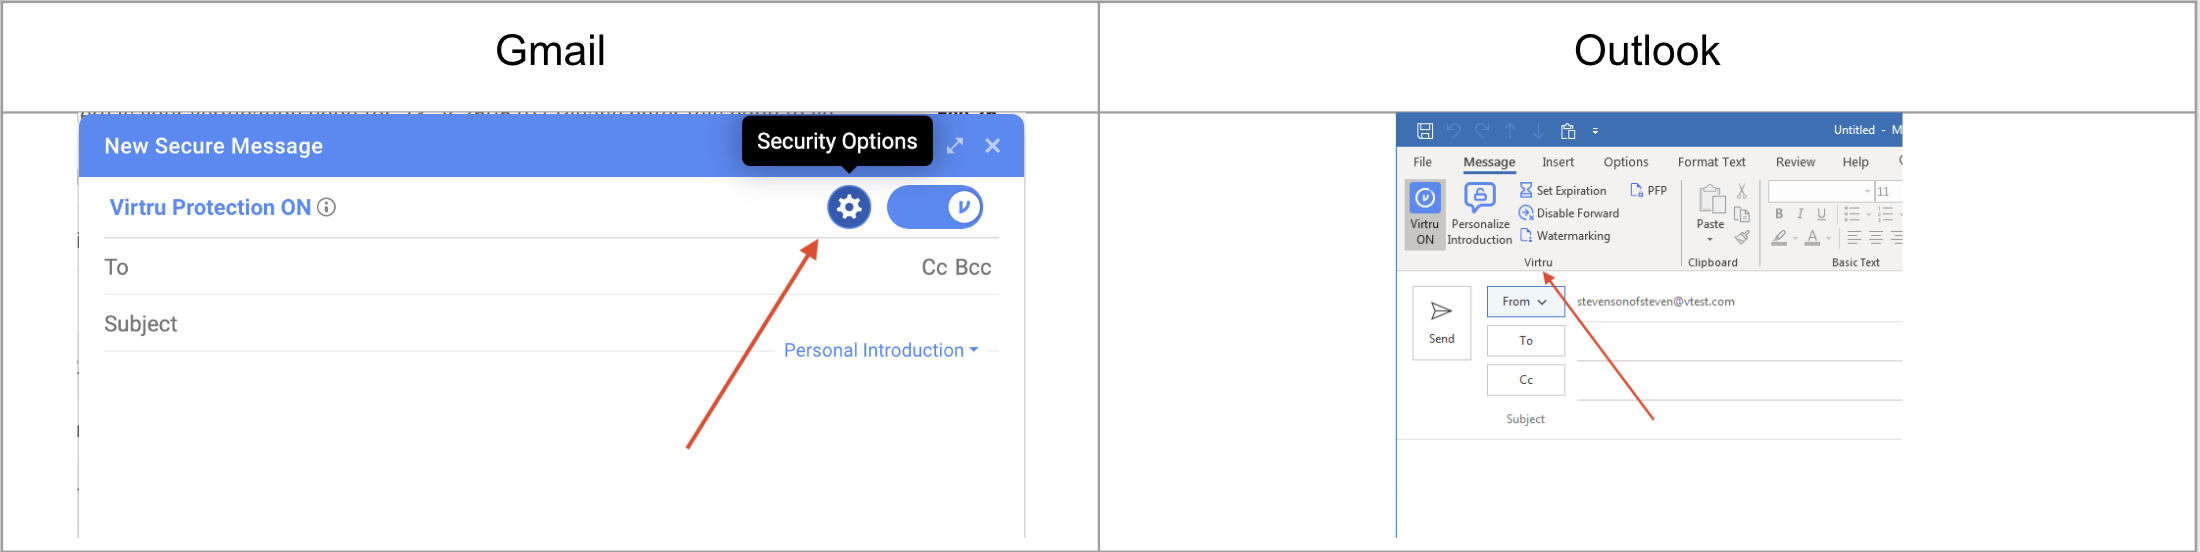 Security Options in Gmail and Outlook drafts